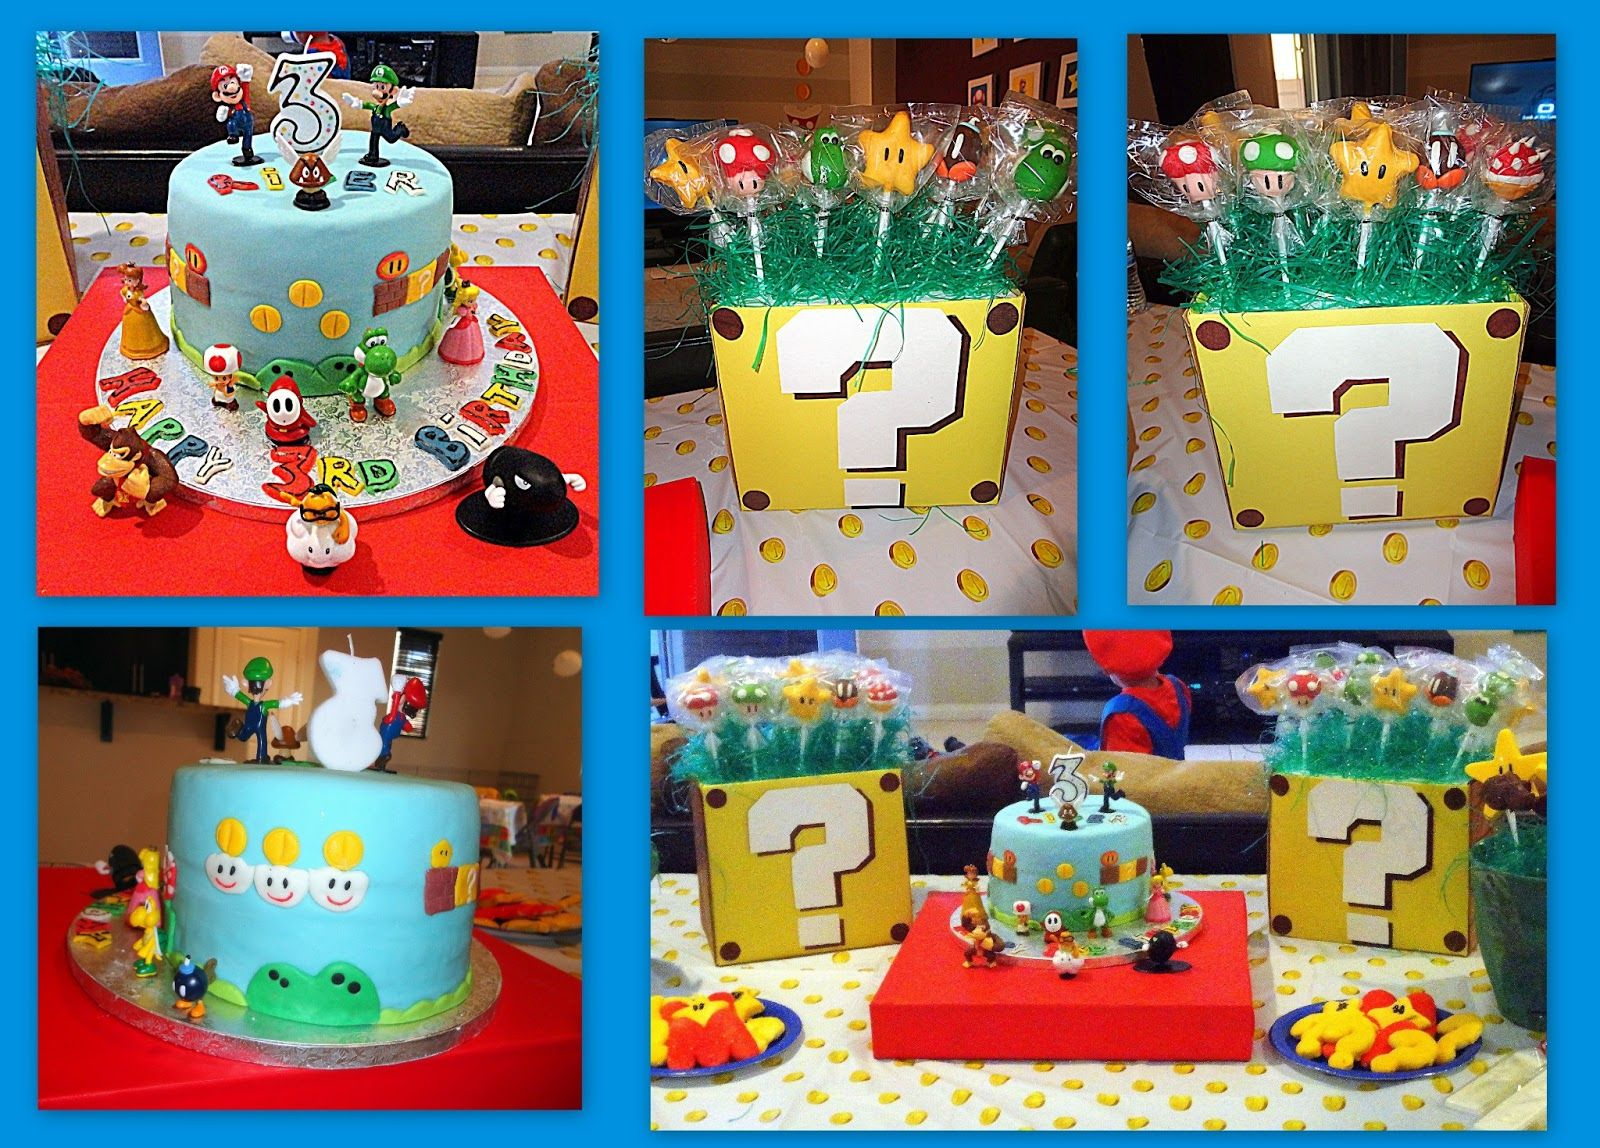 Cake Pops And Cake Inspired By Super Mario Bros Bday Party